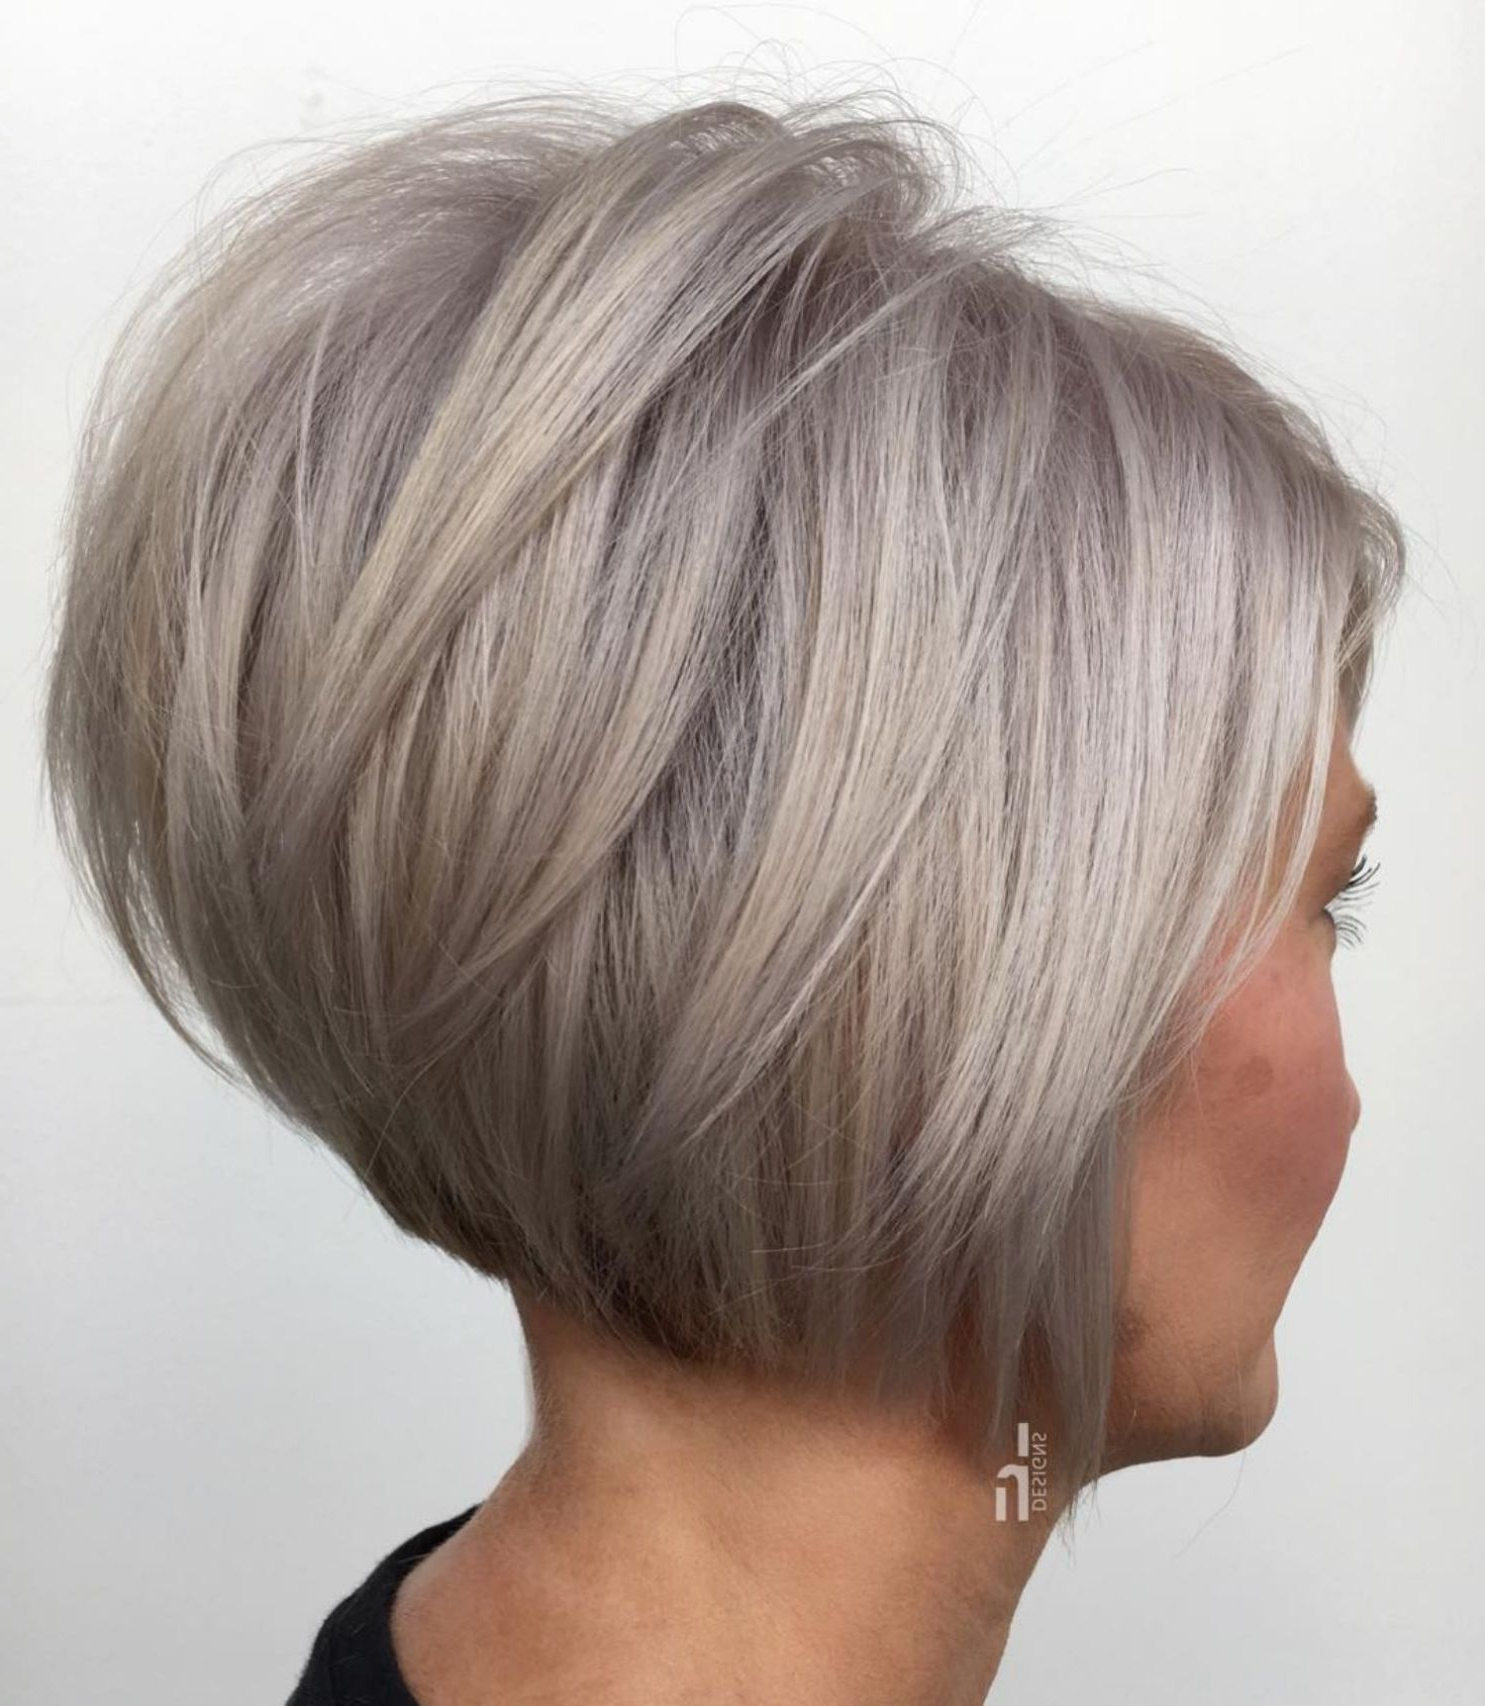 Pin On Beauty And Hair With Regard To Long Pixie Haircuts With Angled Layers (View 17 of 20)